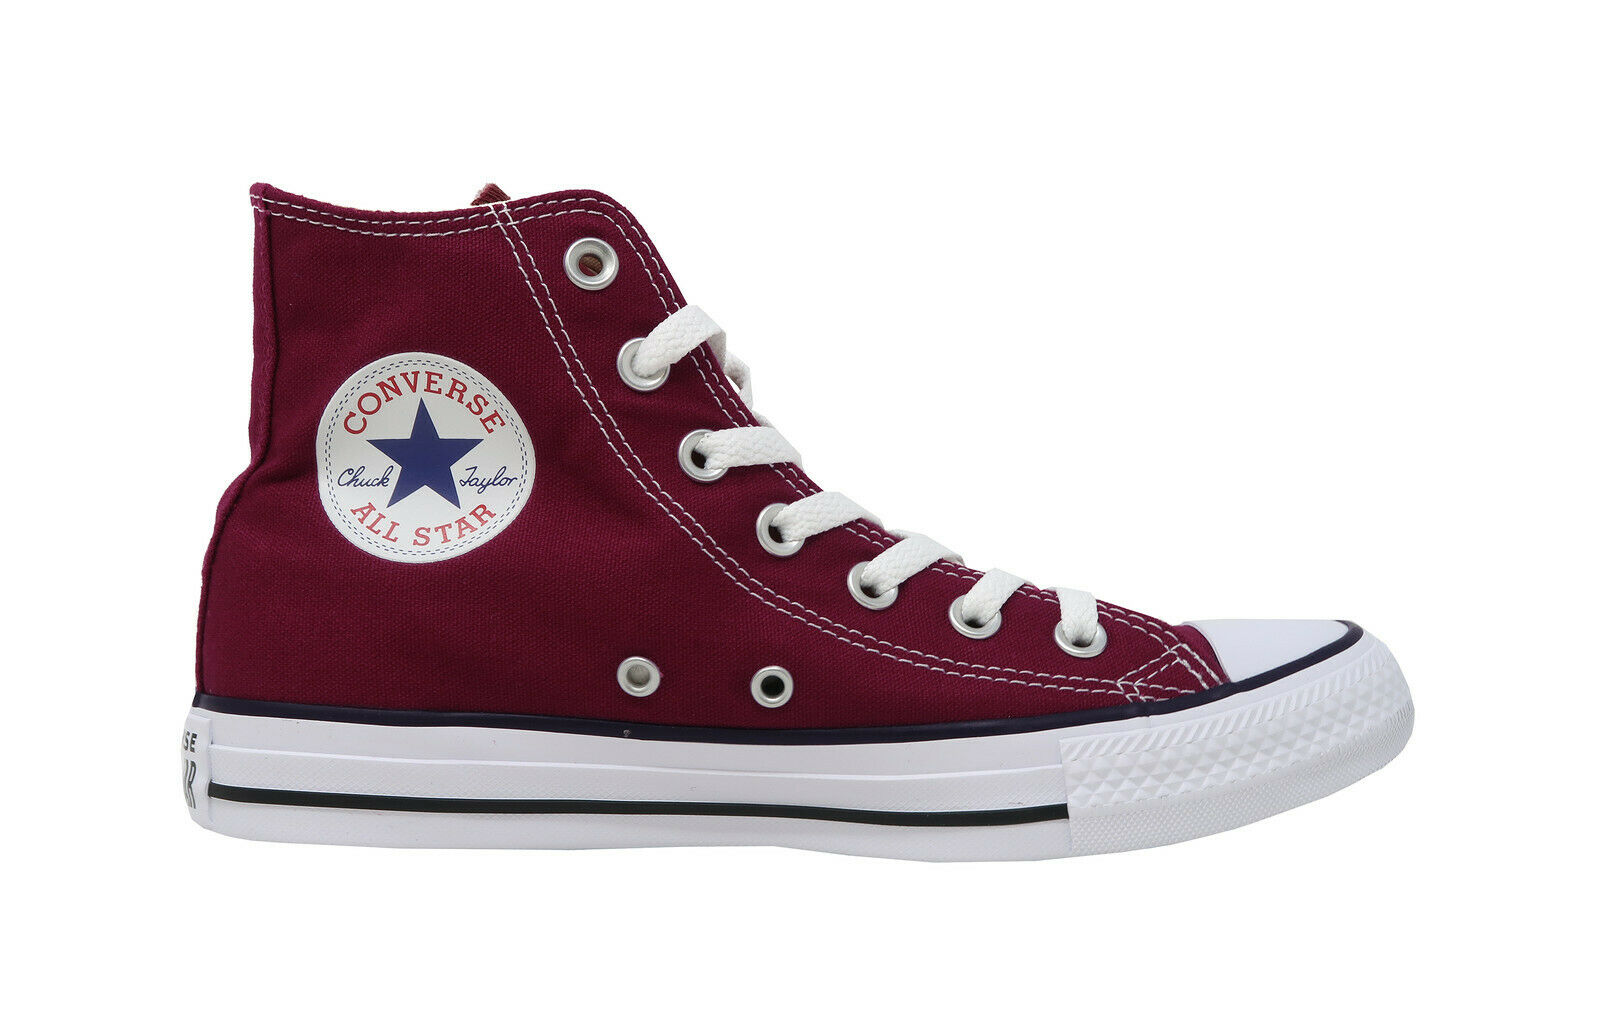 3e5d4d859a7f Converse Chuck Taylor All Star Hi Top Shoes M9613 - Maroon/White for sale  online